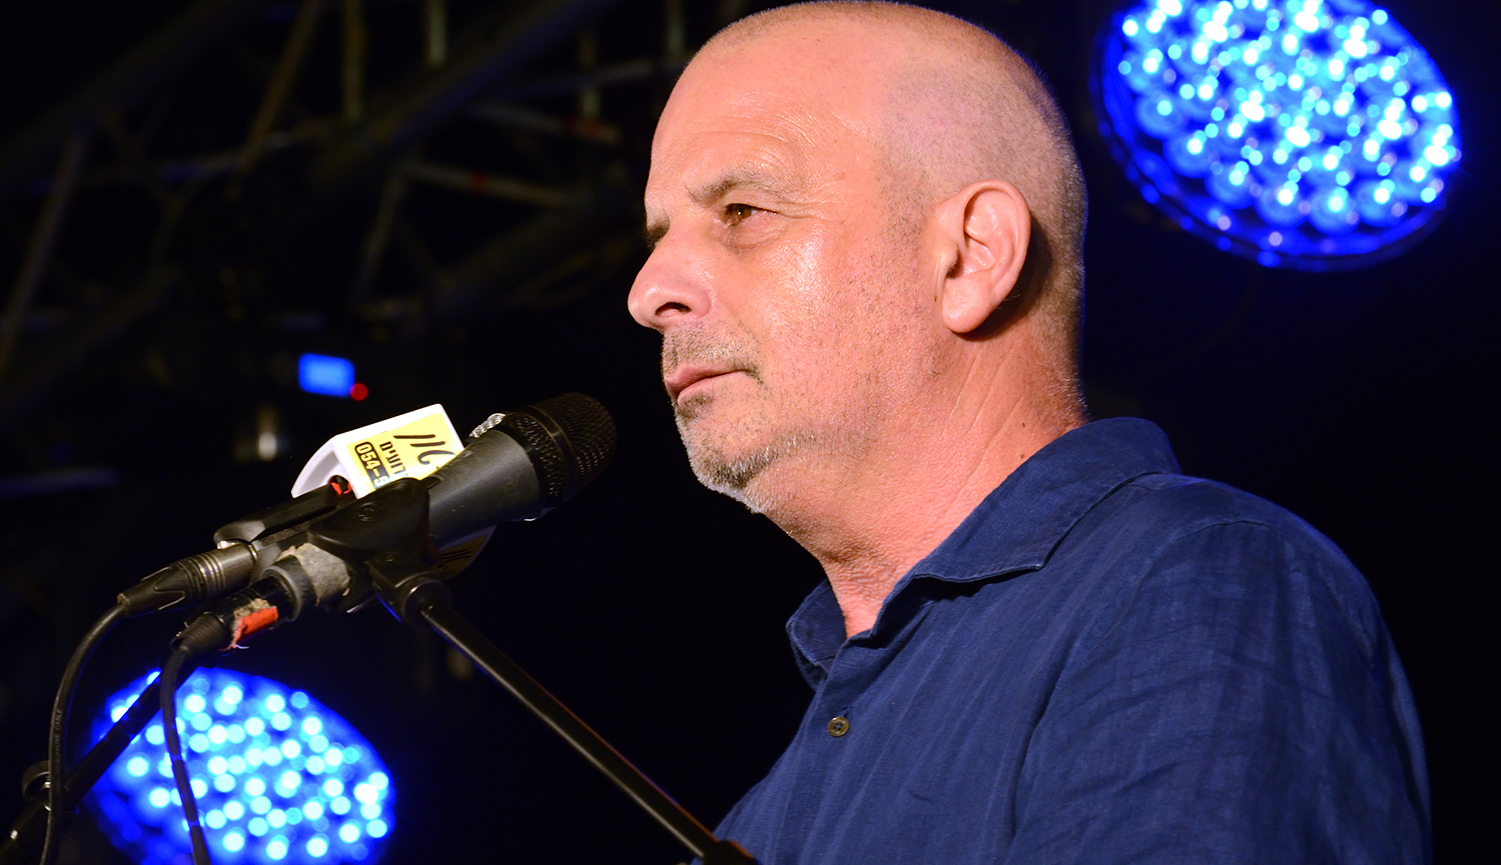 Yuval Diskin, the former director of the Shin Bet, giving a speech against the new nation-state law. Gili Yaari/NurPhoto via Getty Images.